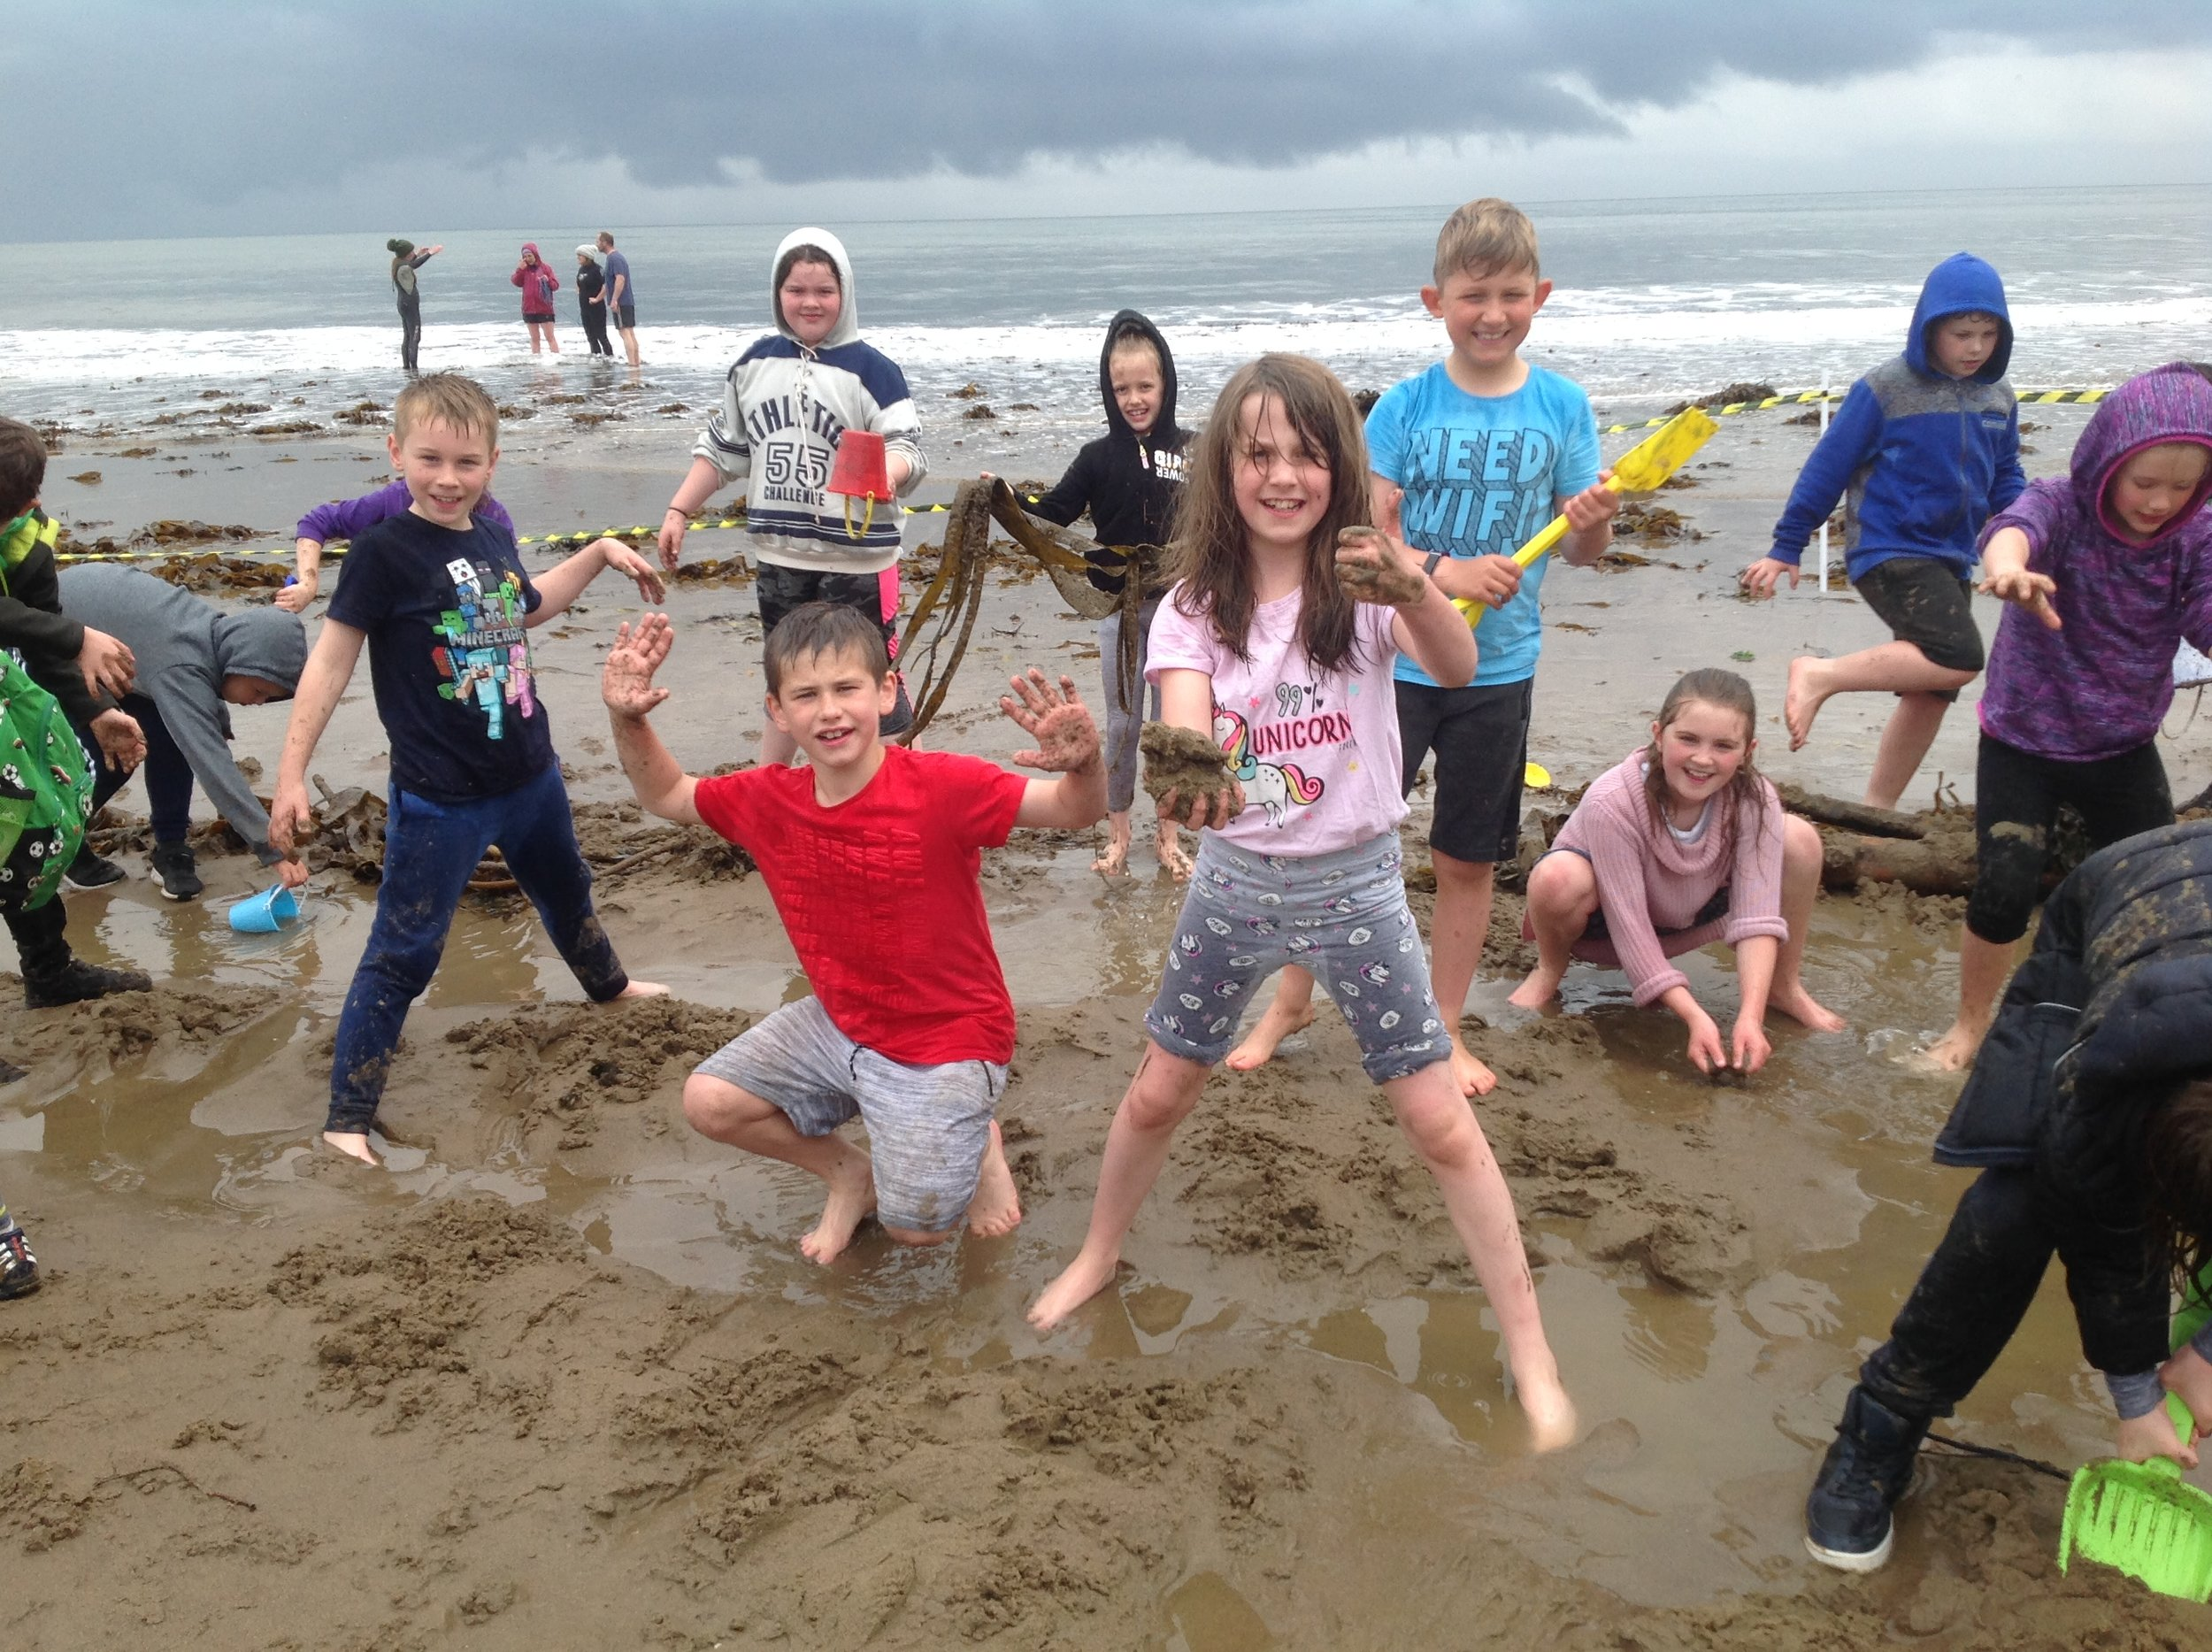 Wet weather won't stop our fun !